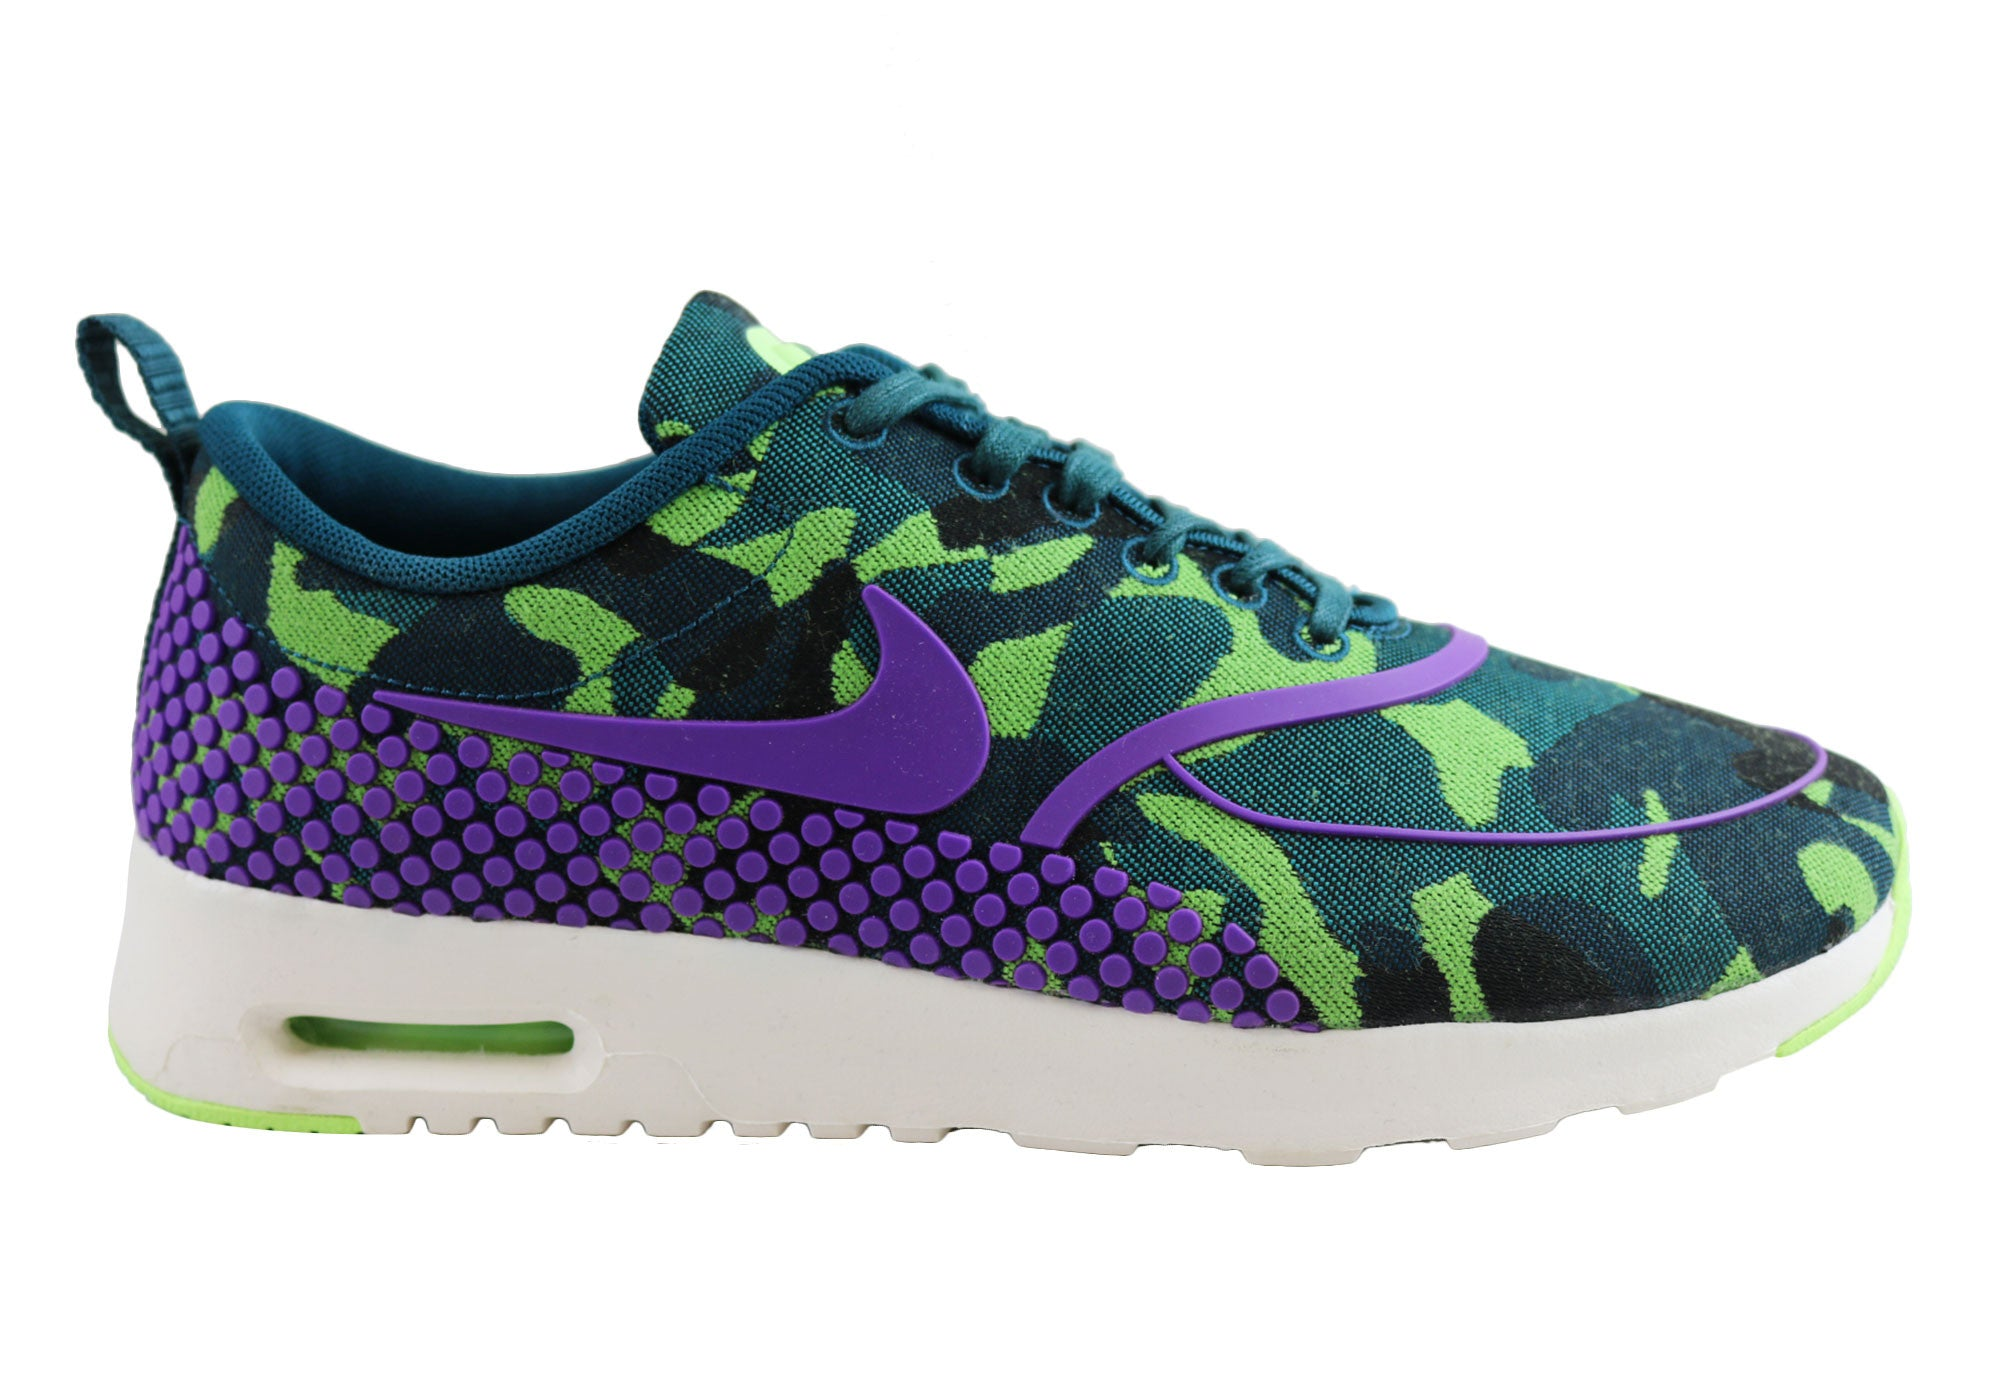 sports shoes 54c86 ef1a0 Home Nike Womens Air Max Thea Jcrd Prm Running Shoes. Purple  ...